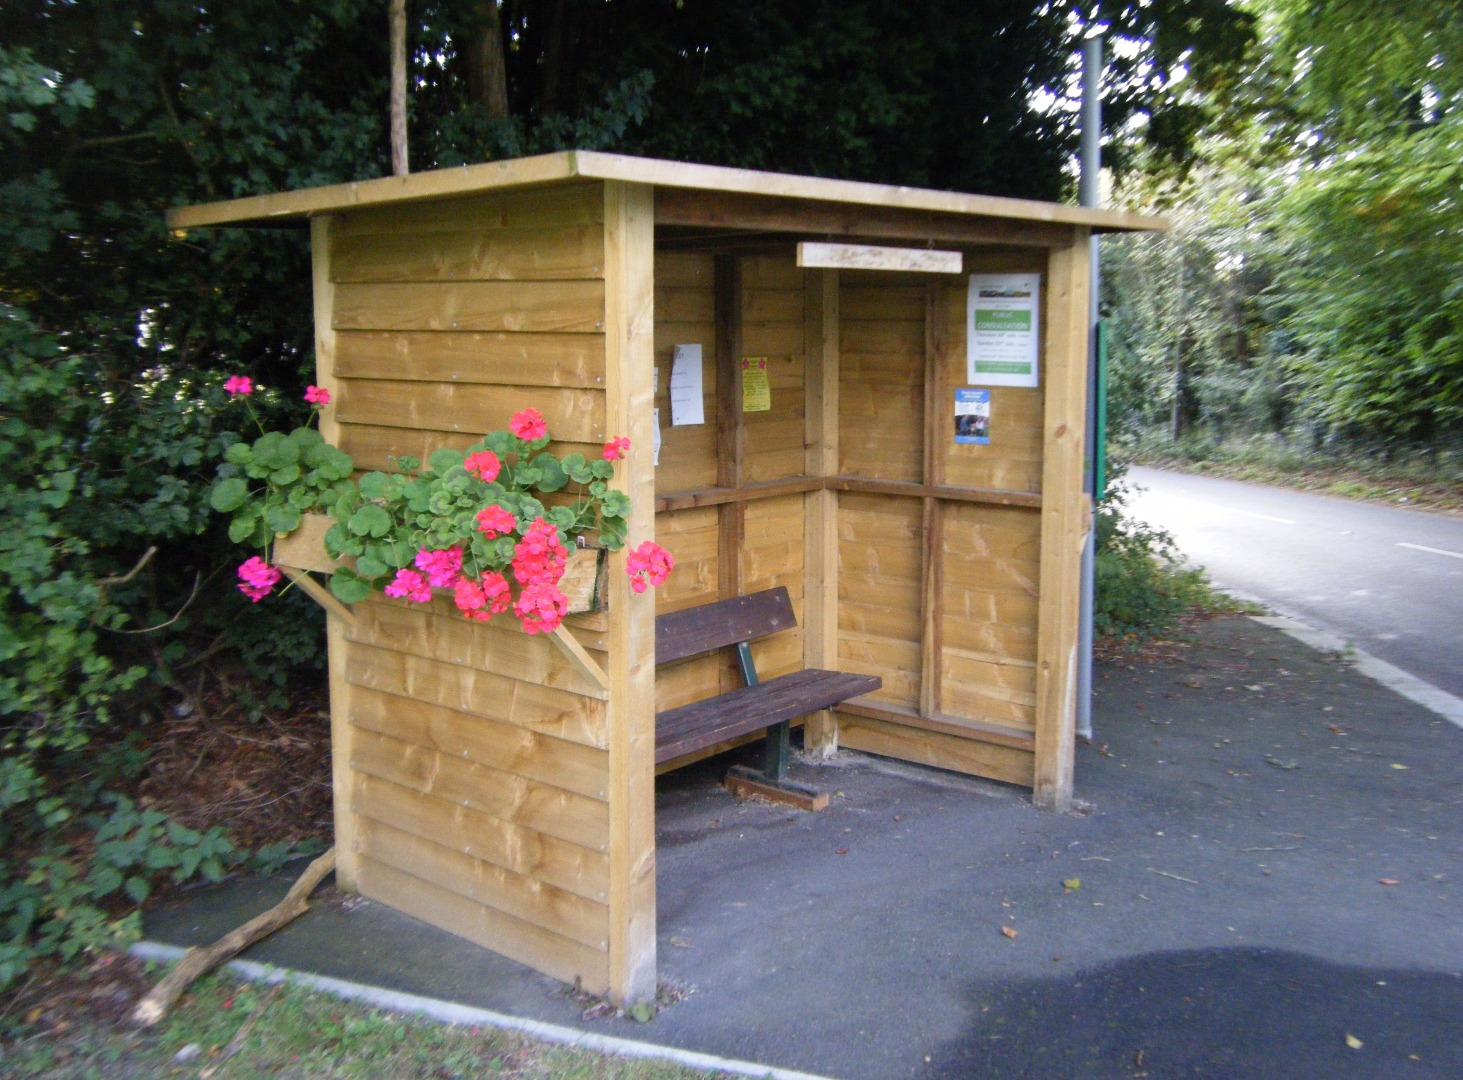 Lyonshall bus stop shelter